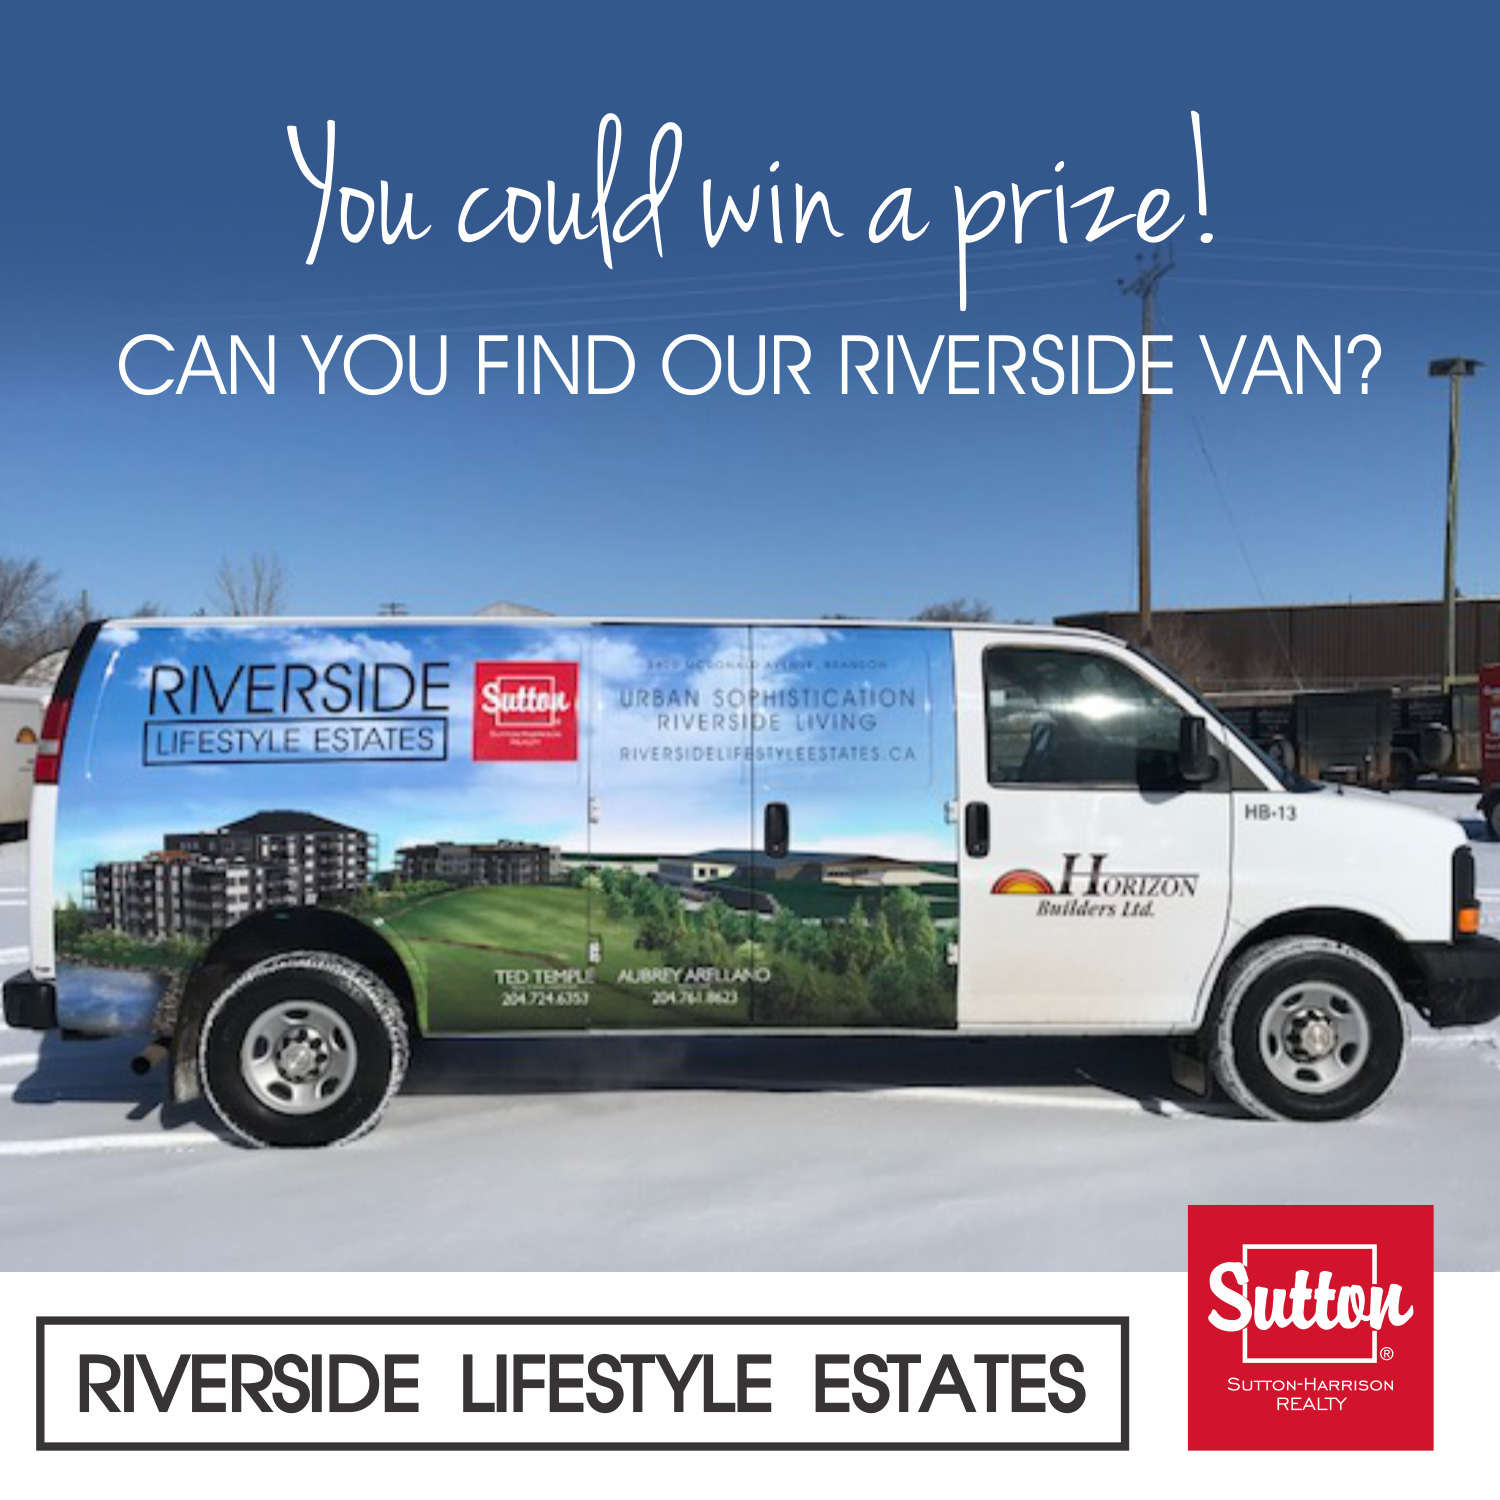 riverside lifestyle estates promotional van